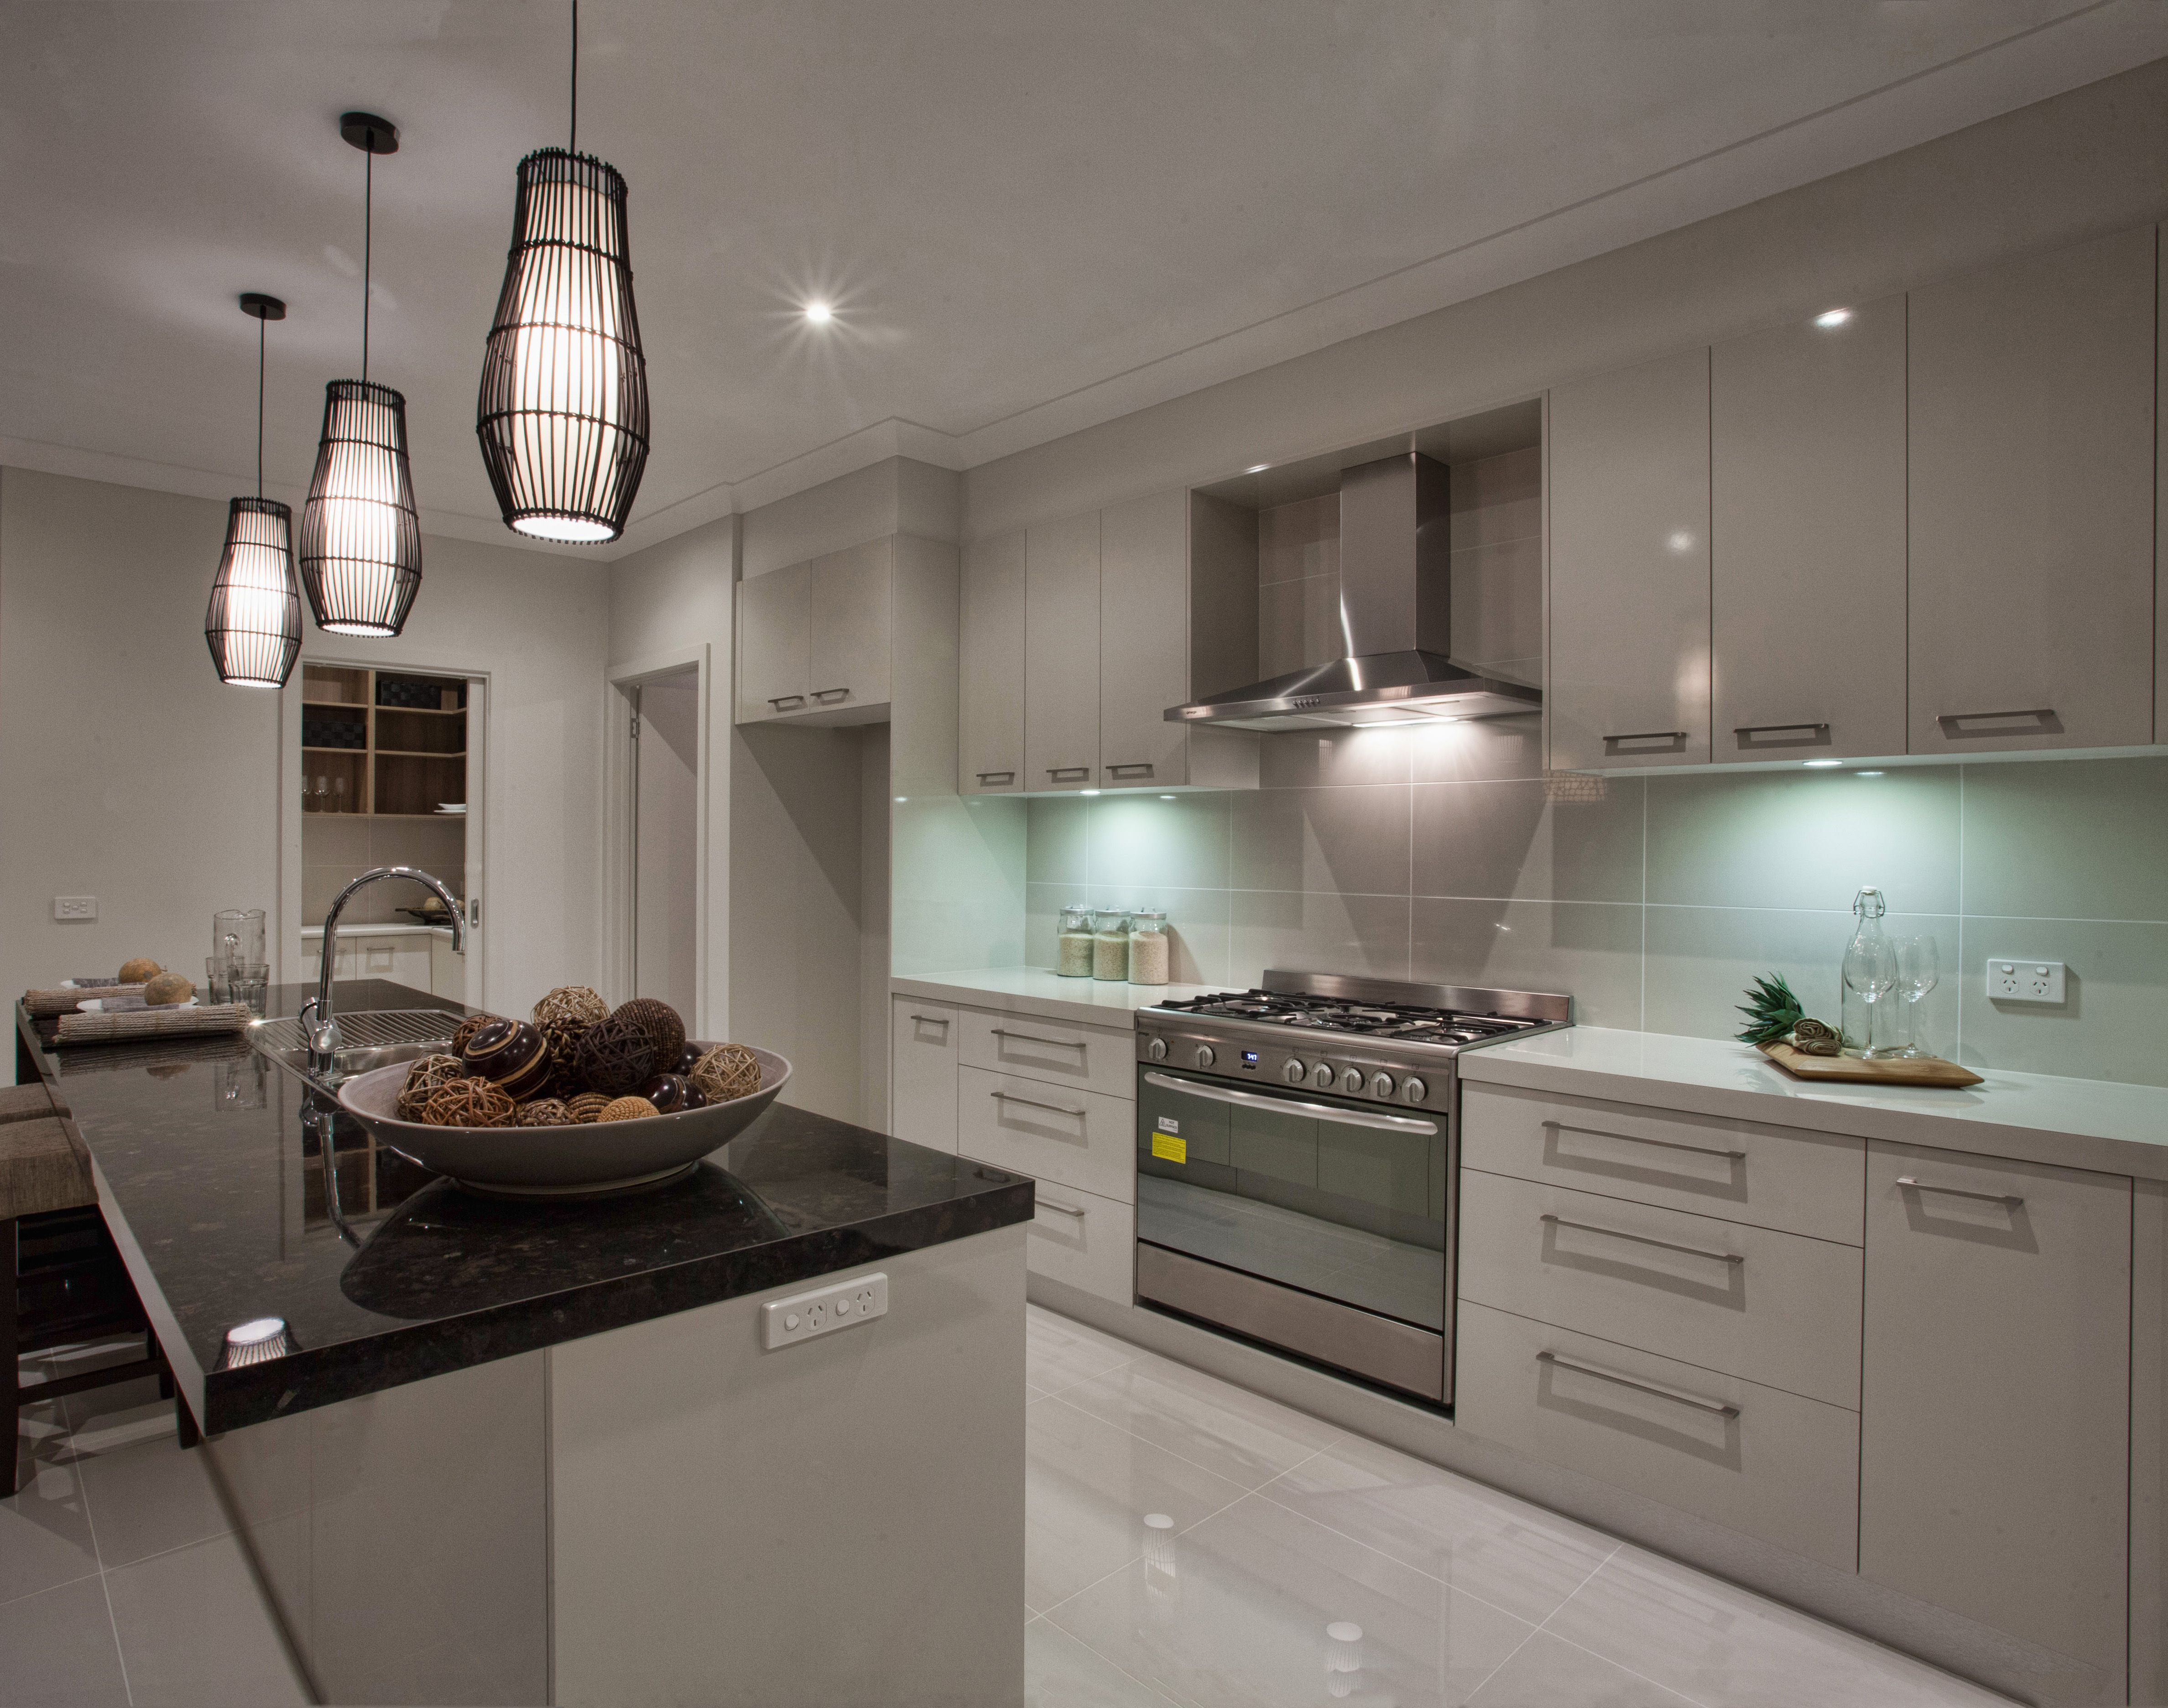 Beautiful kitchen from the hotondo homes birchgrove for Display home kitchens